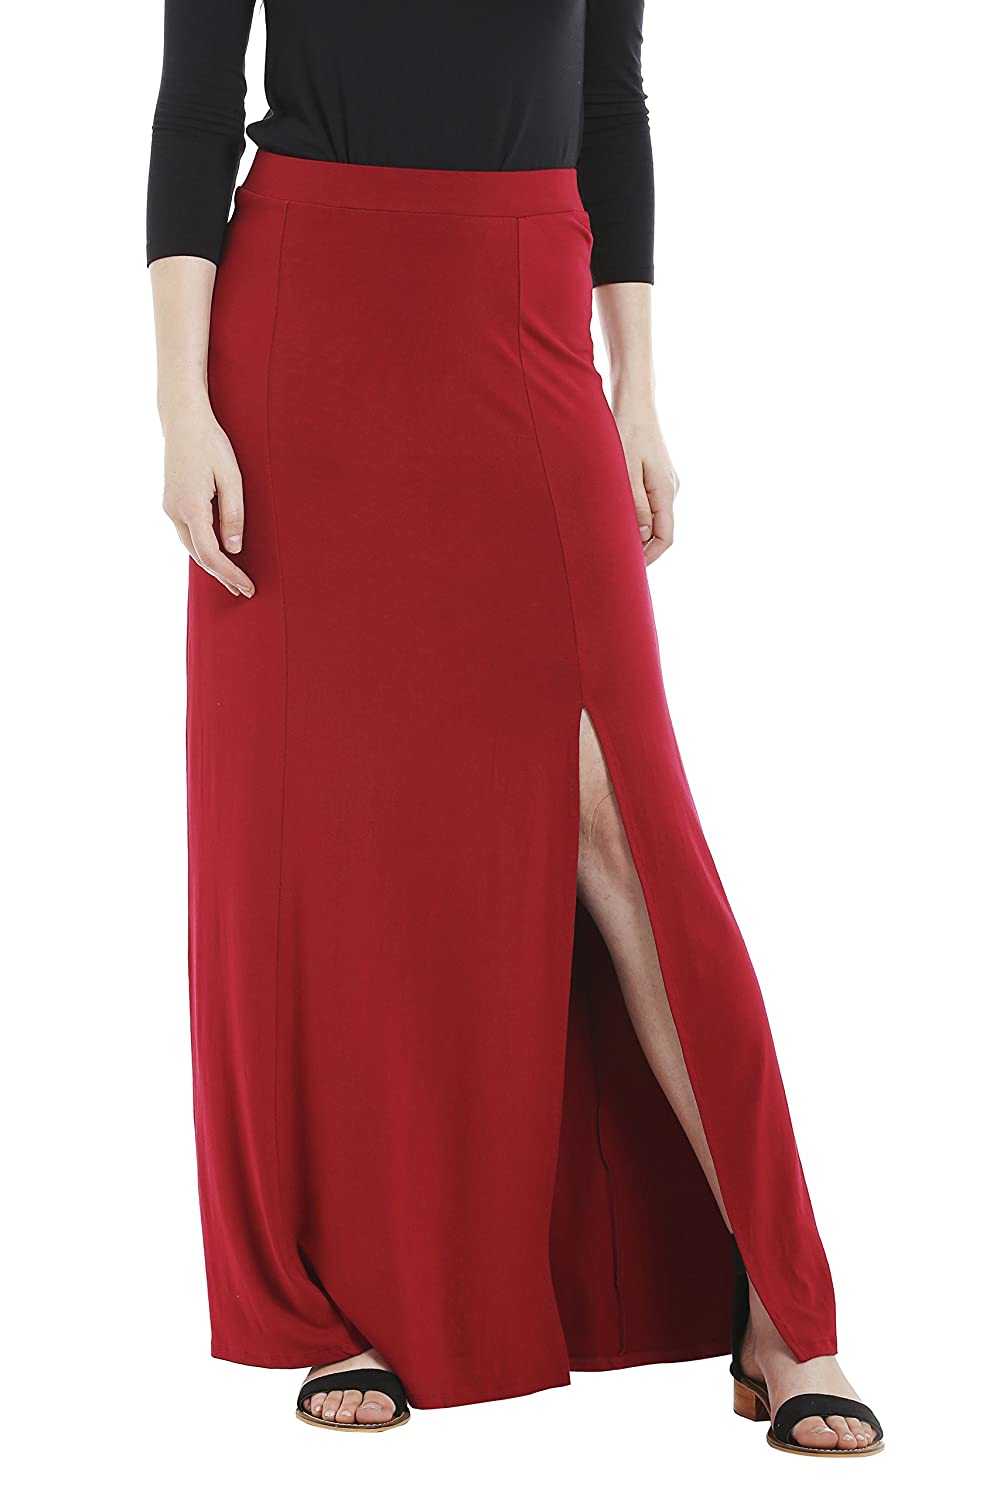 034a0b182c Design: Red Viscose Knit With Spandex Maxi Skirt. Stretch fabric with a  waistband on top. Flared Round Bottom with a slit till mid thigh. Skirt  Length: Maxi ...